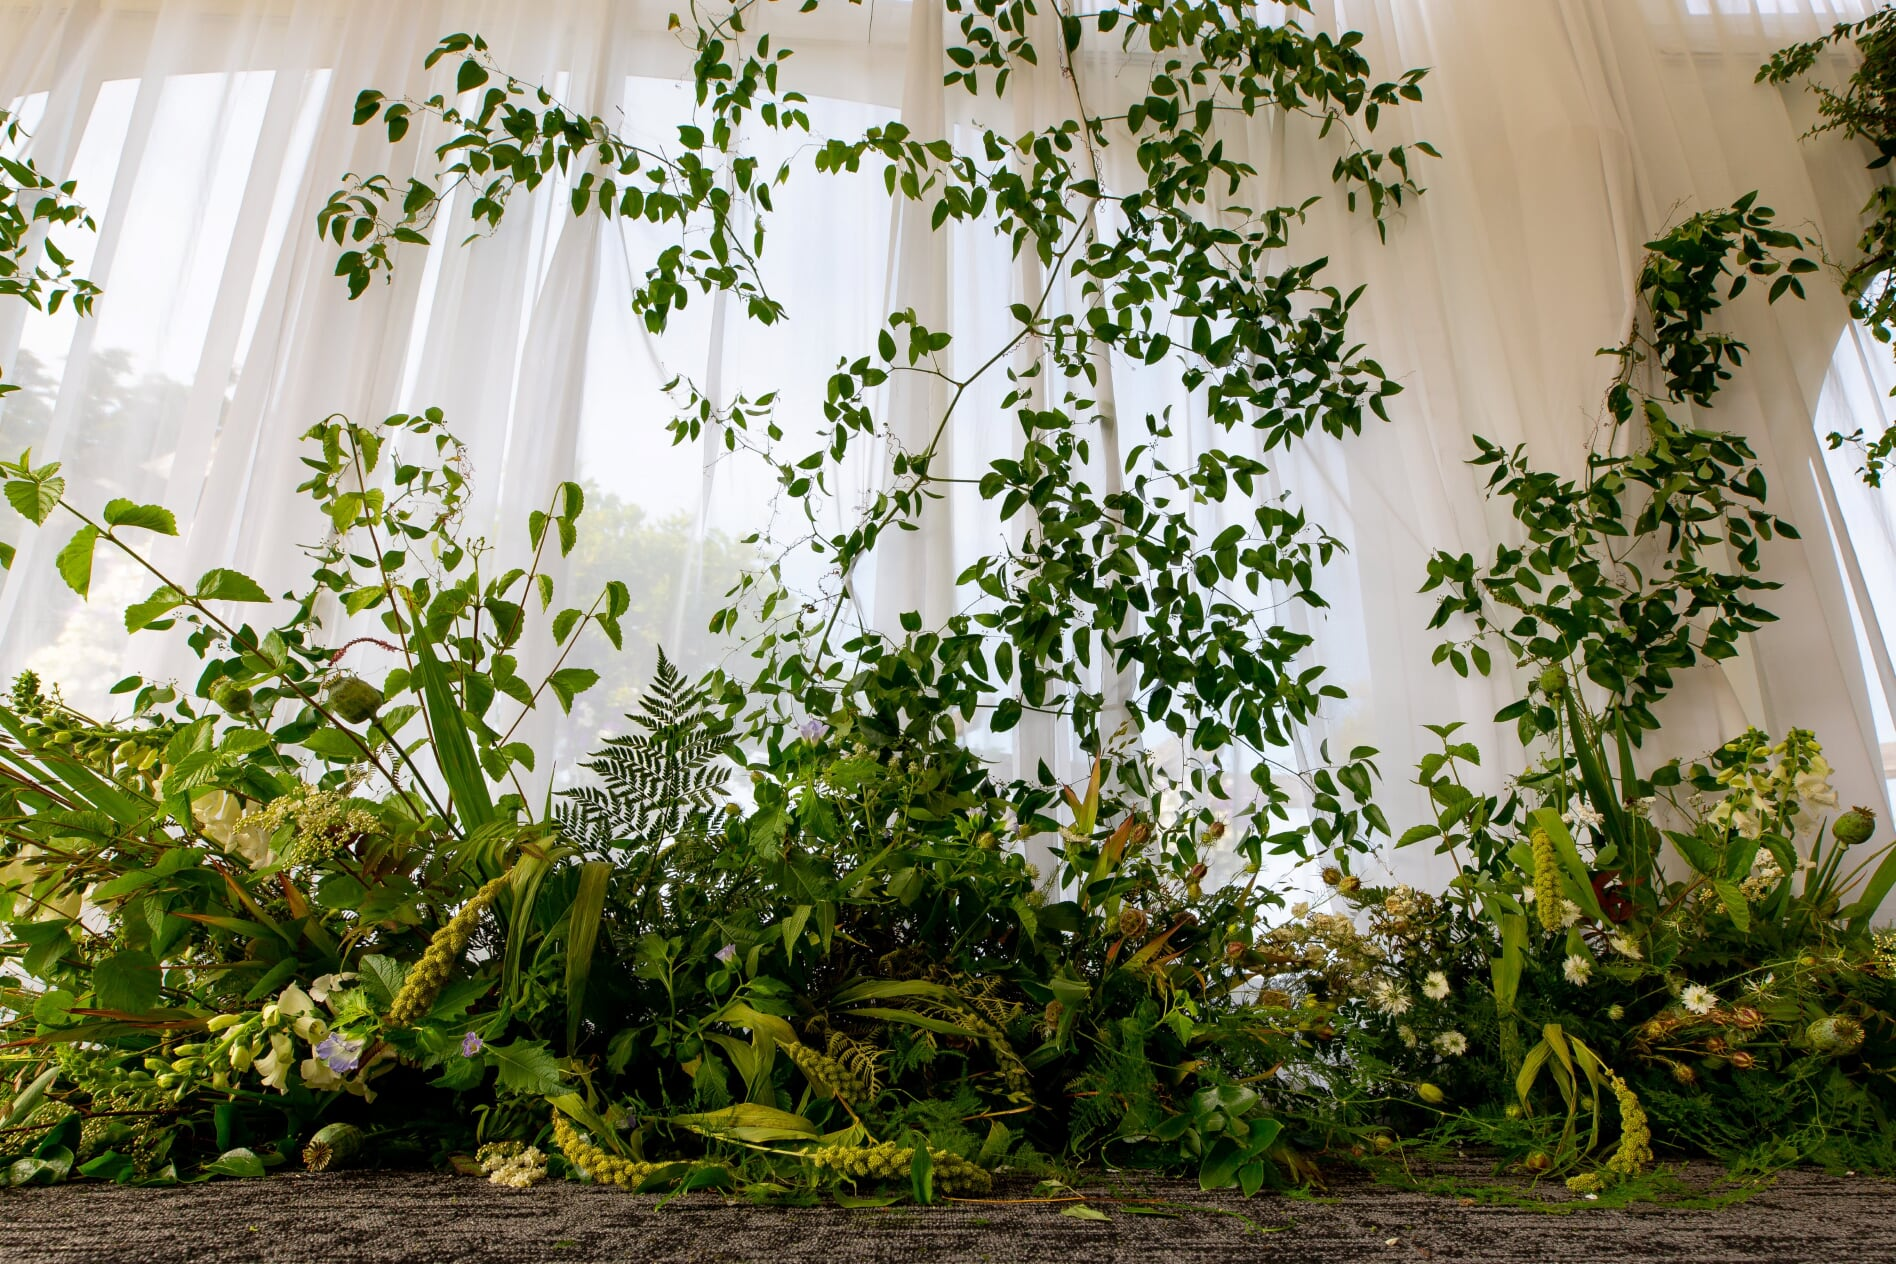 Greenery vines climbing walls of the tent at ceremony